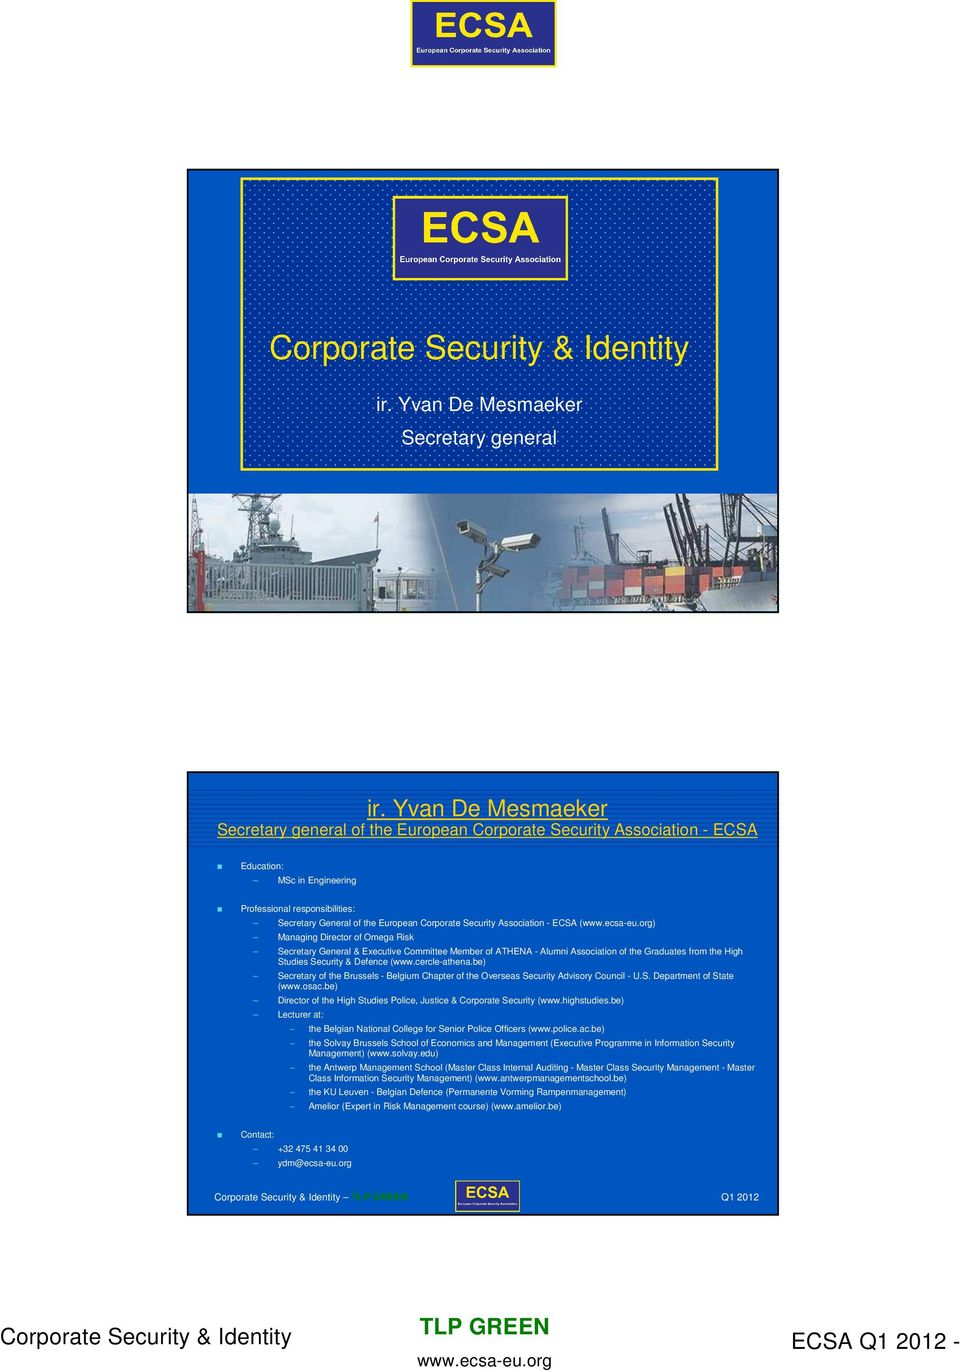 Security Association - ECSA () Managing Director of Omega Risk Secretary General & Executive Committee Member of ATHENA - Alumni Association of the Graduates from the High Studies Security & Defence